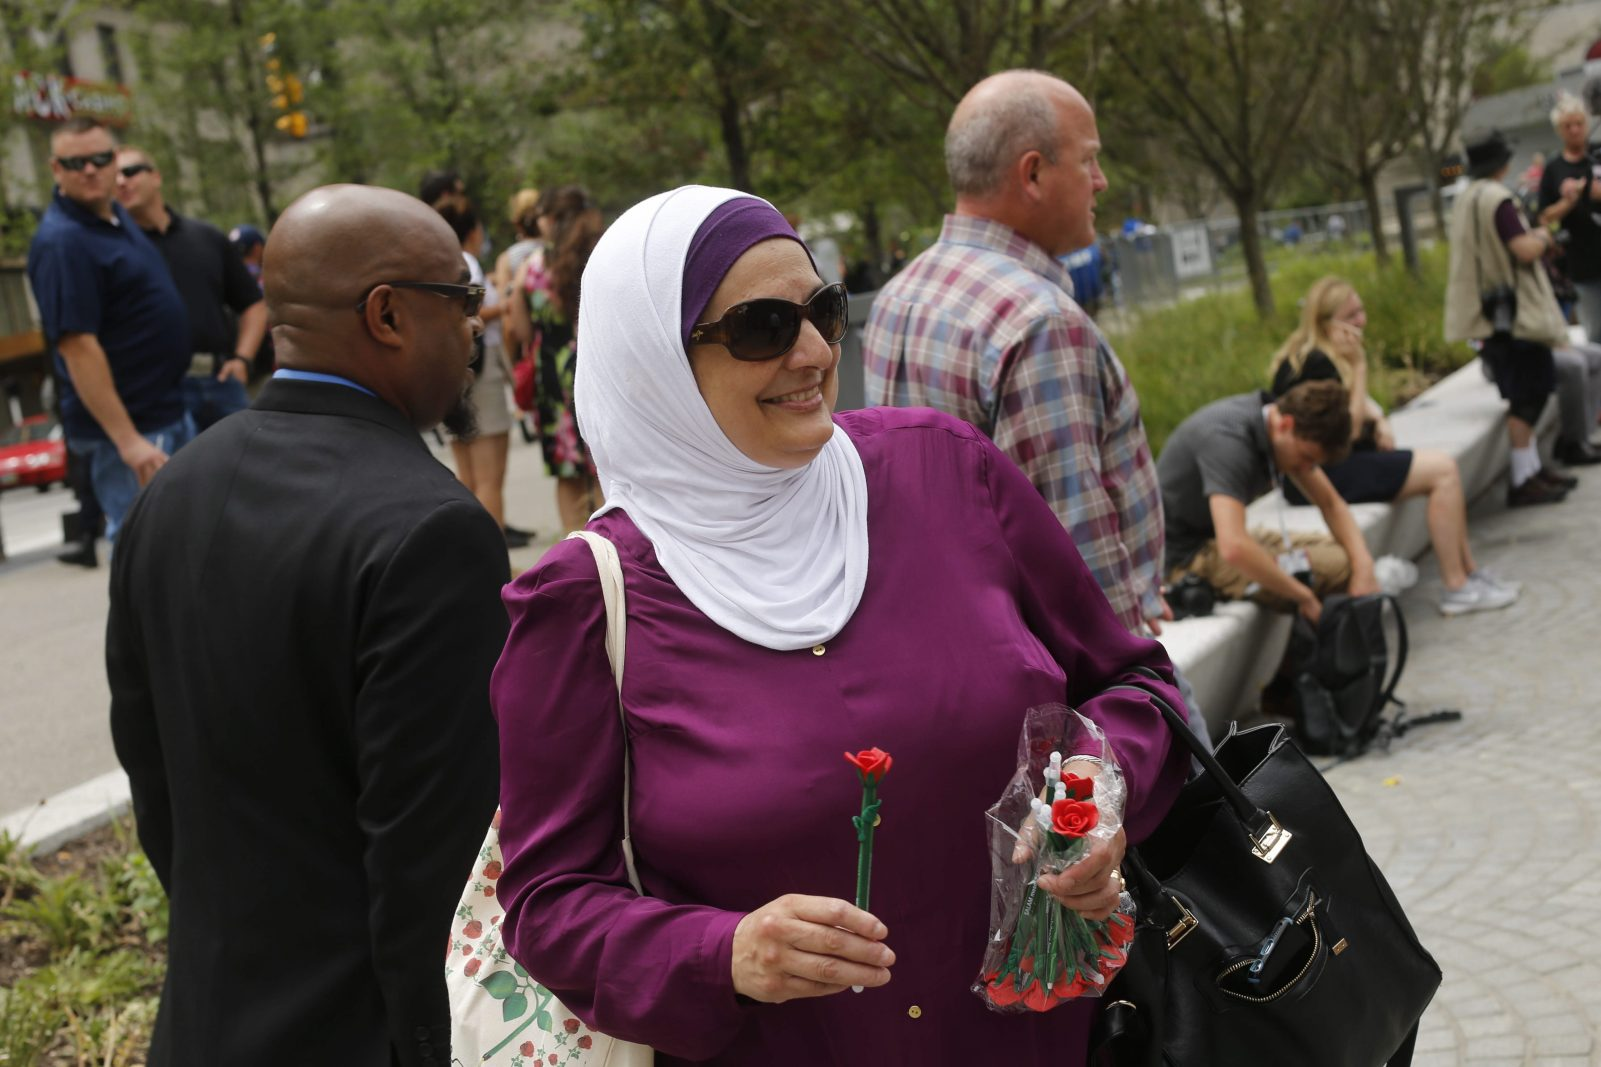 """Rose Hamid, who was born in Buffalo but has lived in North Carolina since 1987, hands out flower pens with the group """"Salam I Come in Peace"""" during protests outside the RNC in Cleveland, Ohio, Monday, July 18, 2016. (Photo by Derek Gee)"""